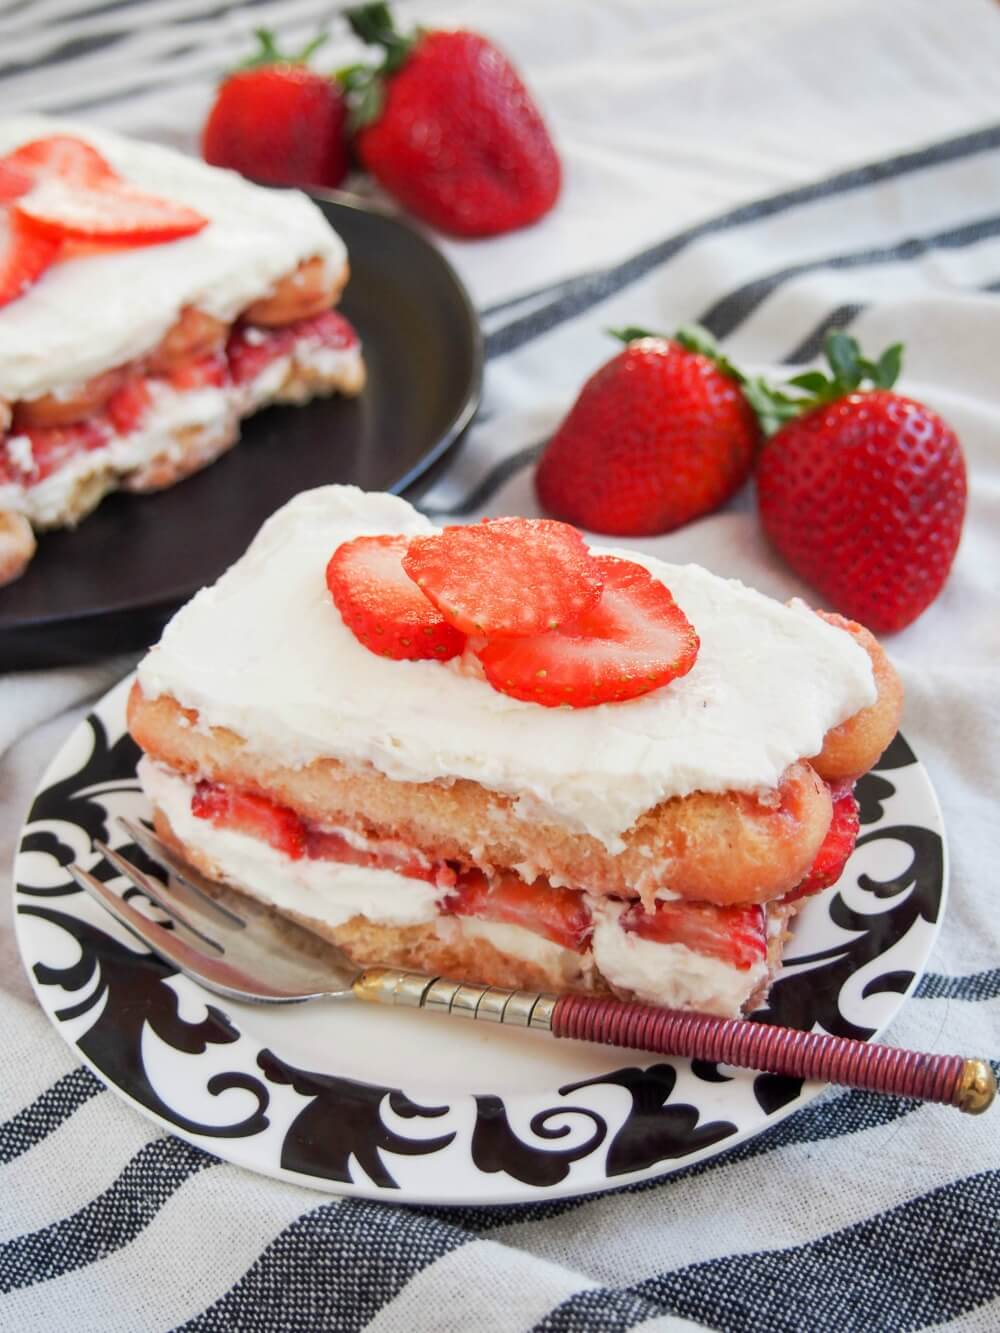 strawberry tiramisu with one serving on a plate